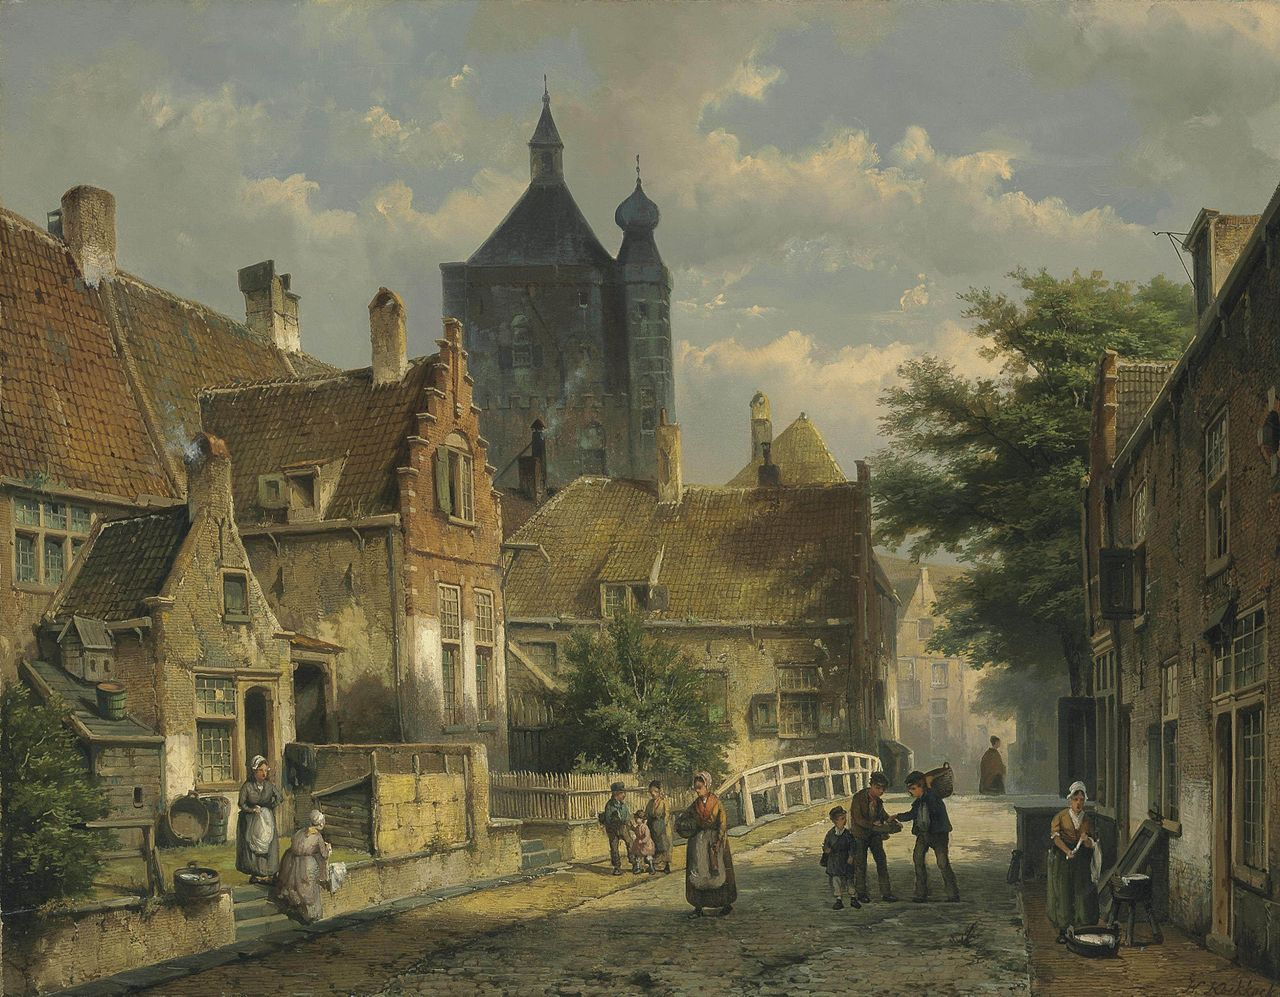 Willem Koekkoek - Villagers on a Sunlit Dutch Street.jpg